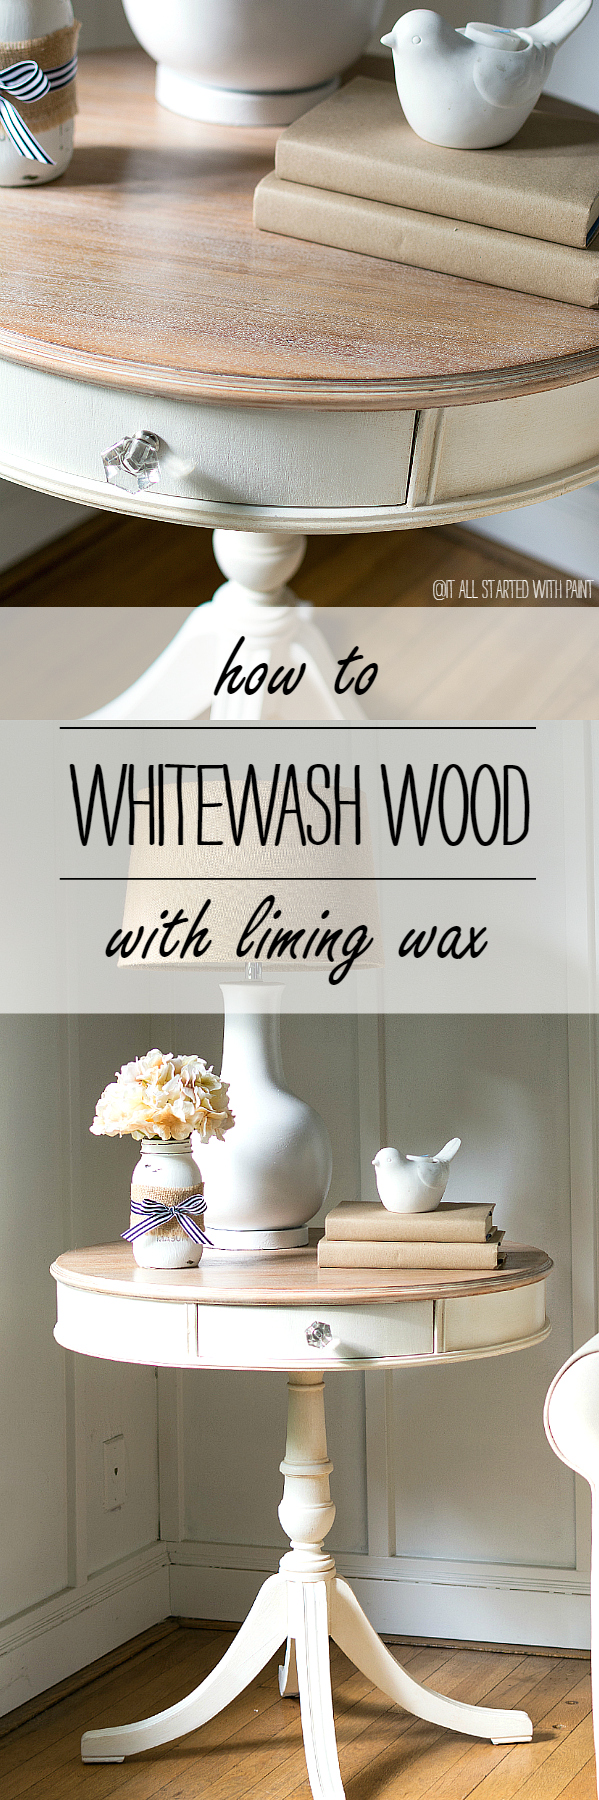 How To Whitewash Wood Using Liming Wax